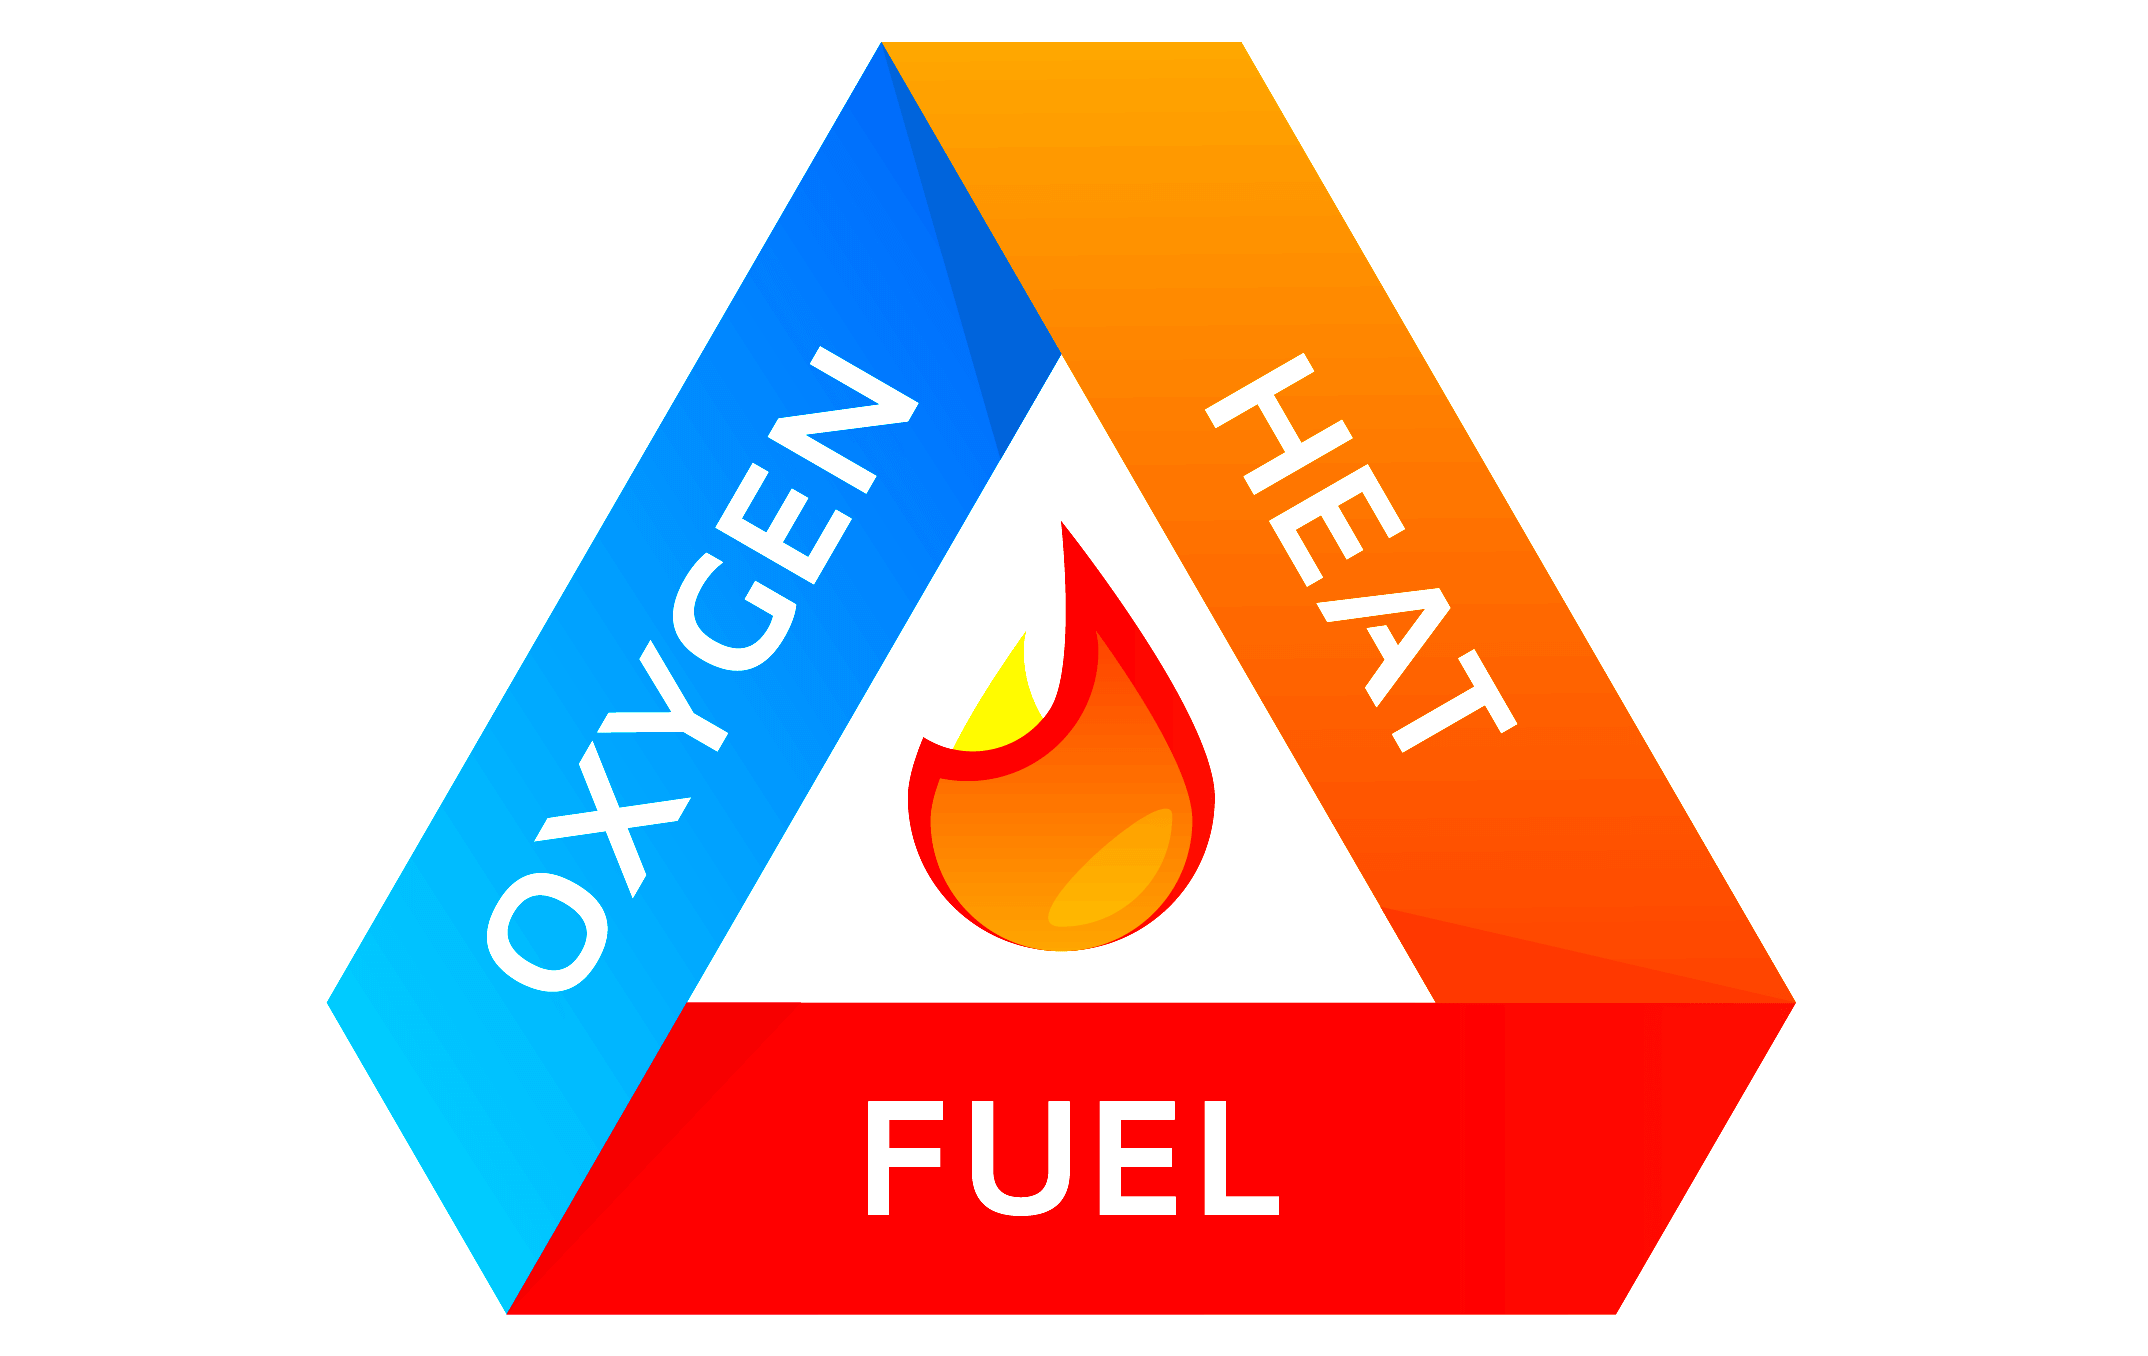 What is fire triangle